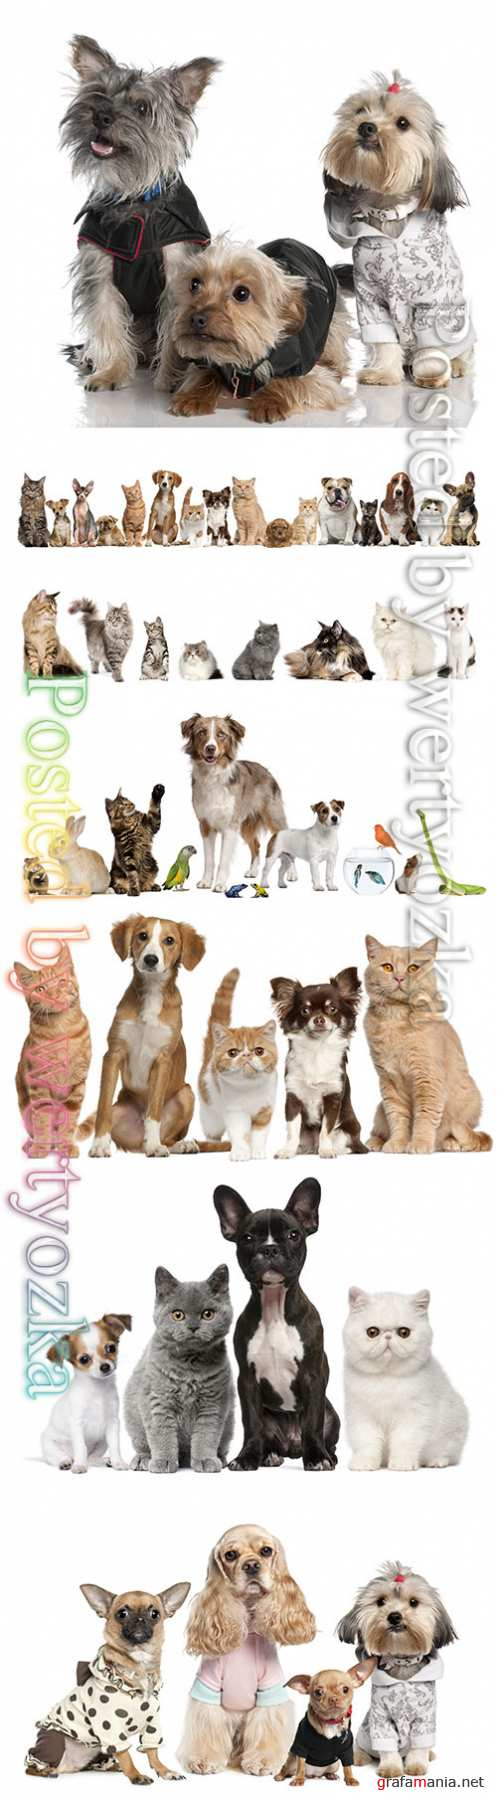 Cats and dogs beautiful stock photo